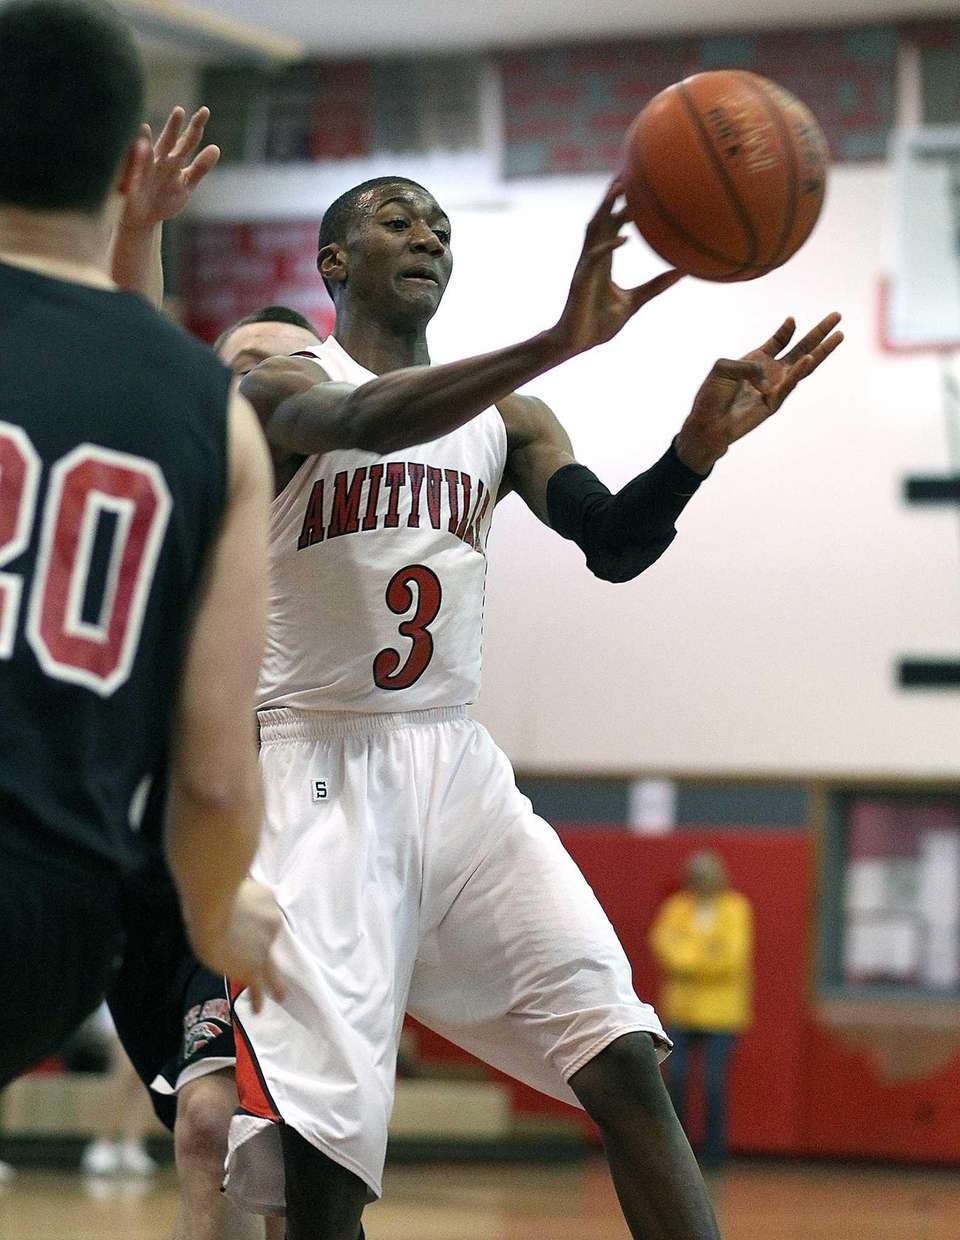 Amityville's Travis Dickerson fires a pass to a